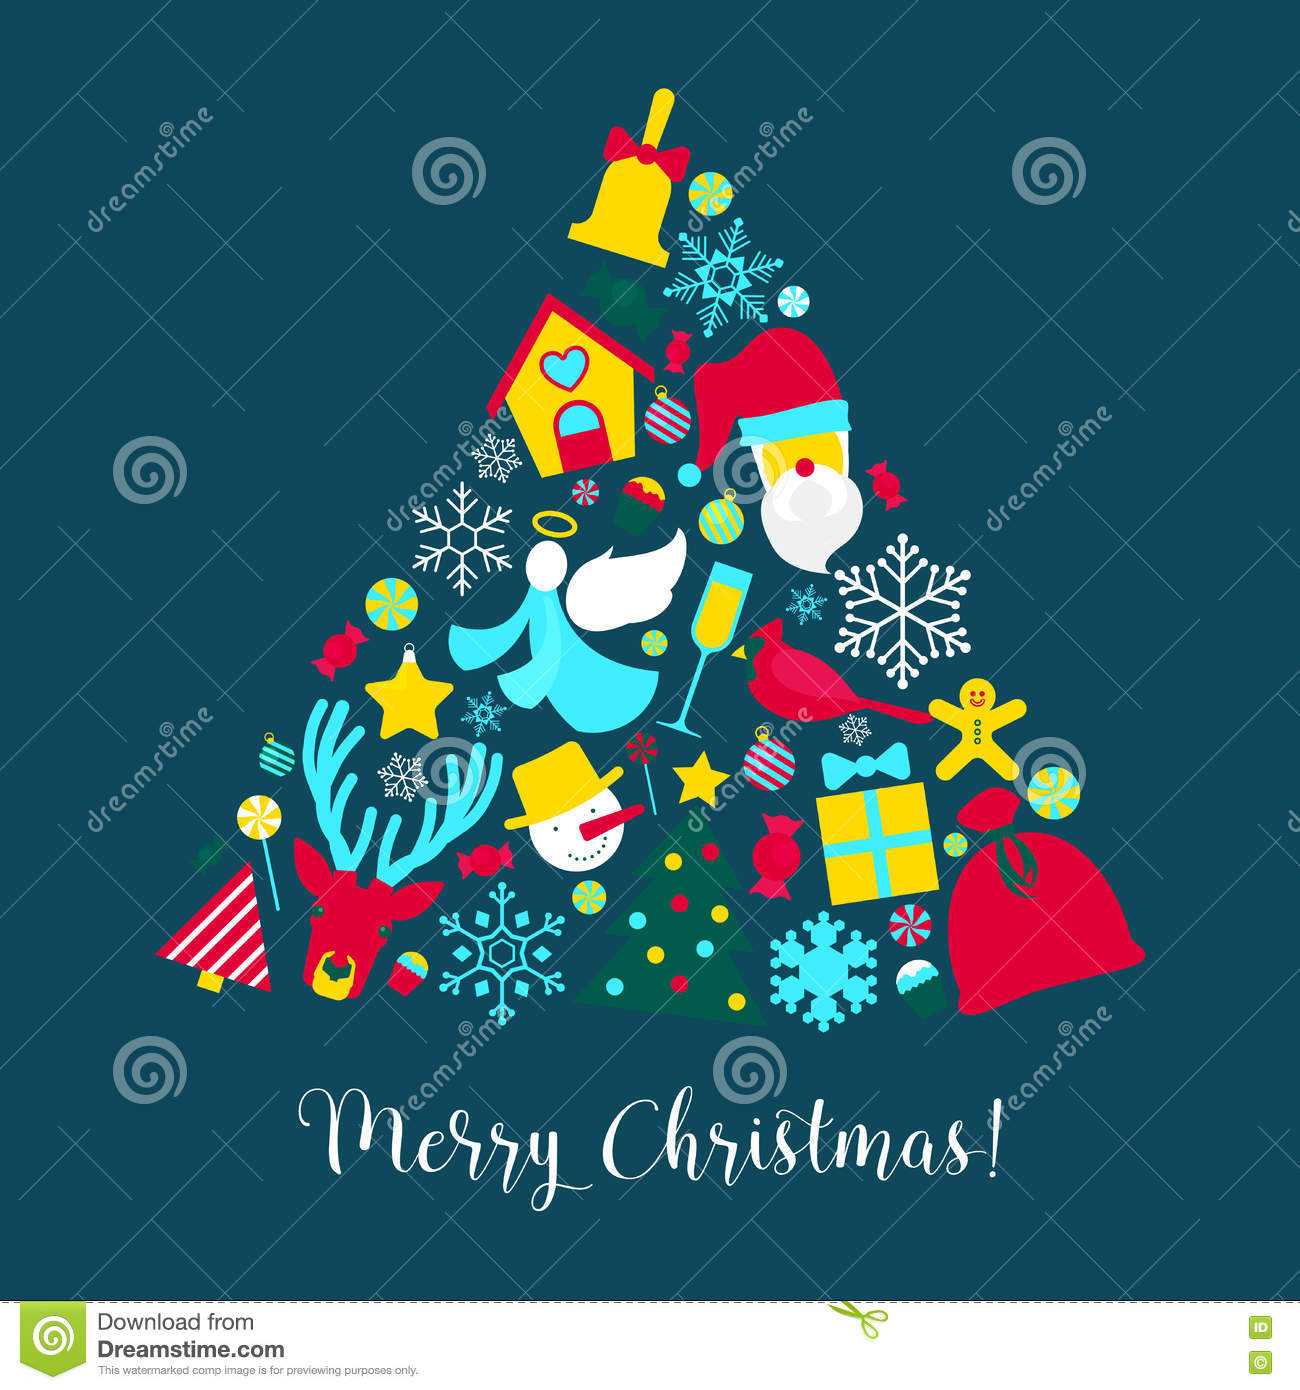 Merry christmas greeting card with christmas tree santa claus and download merry christmas greeting card with christmas tree santa claus and snowflakes stock vector illustration m4hsunfo